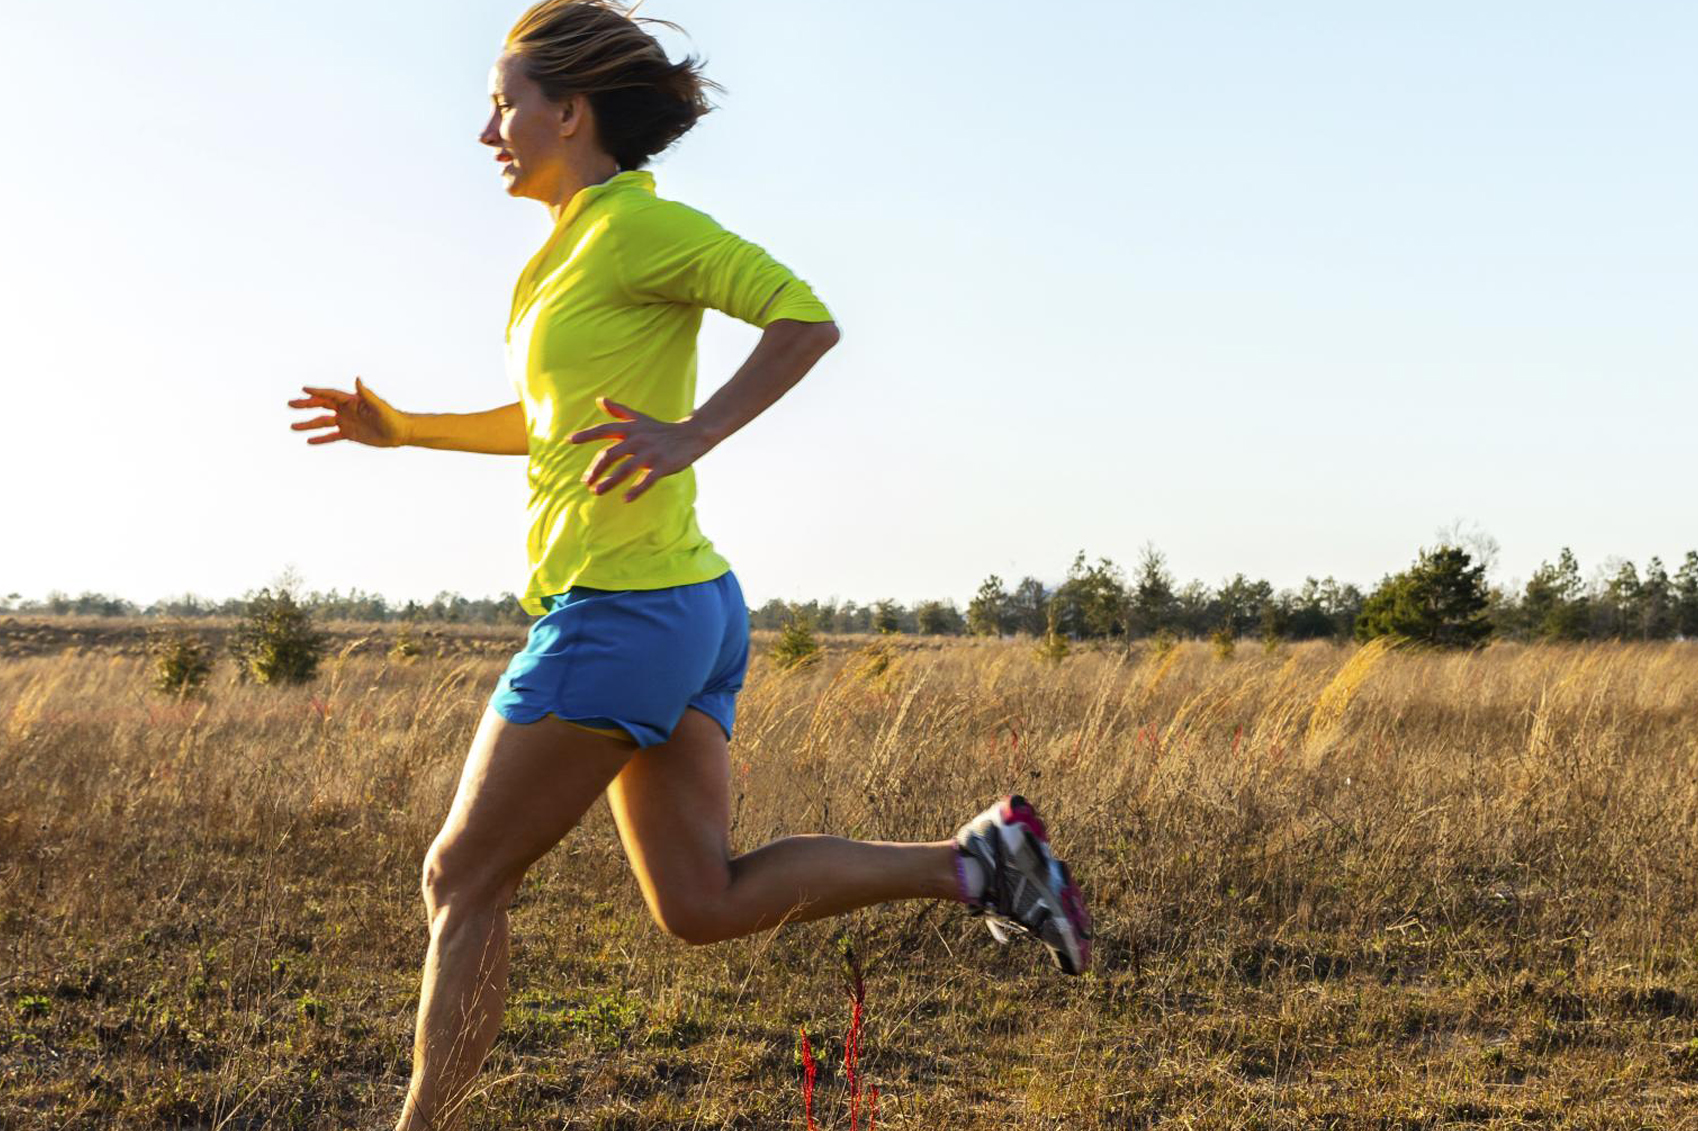 A woman jogging on a path in a field.